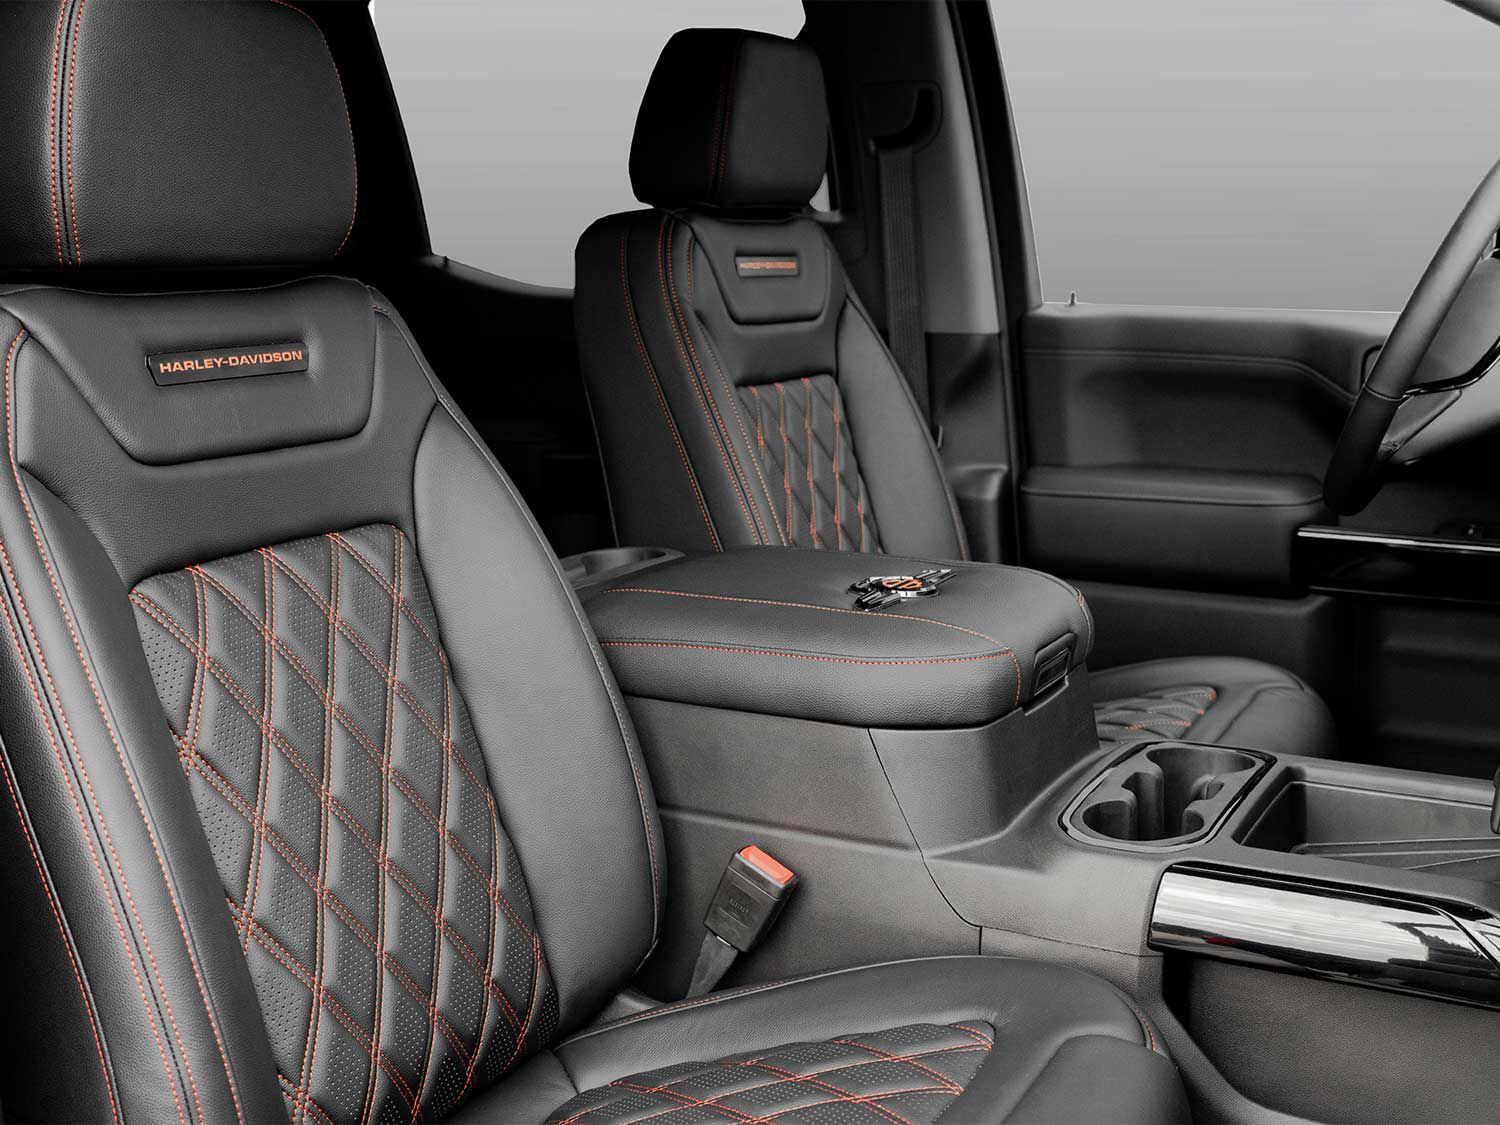 The Harley-Davidson GMC features beautiful hand-stitched leather seats and matching interior designed by Tuscany Motor Co. with plenty of strategically placed H-D badging.